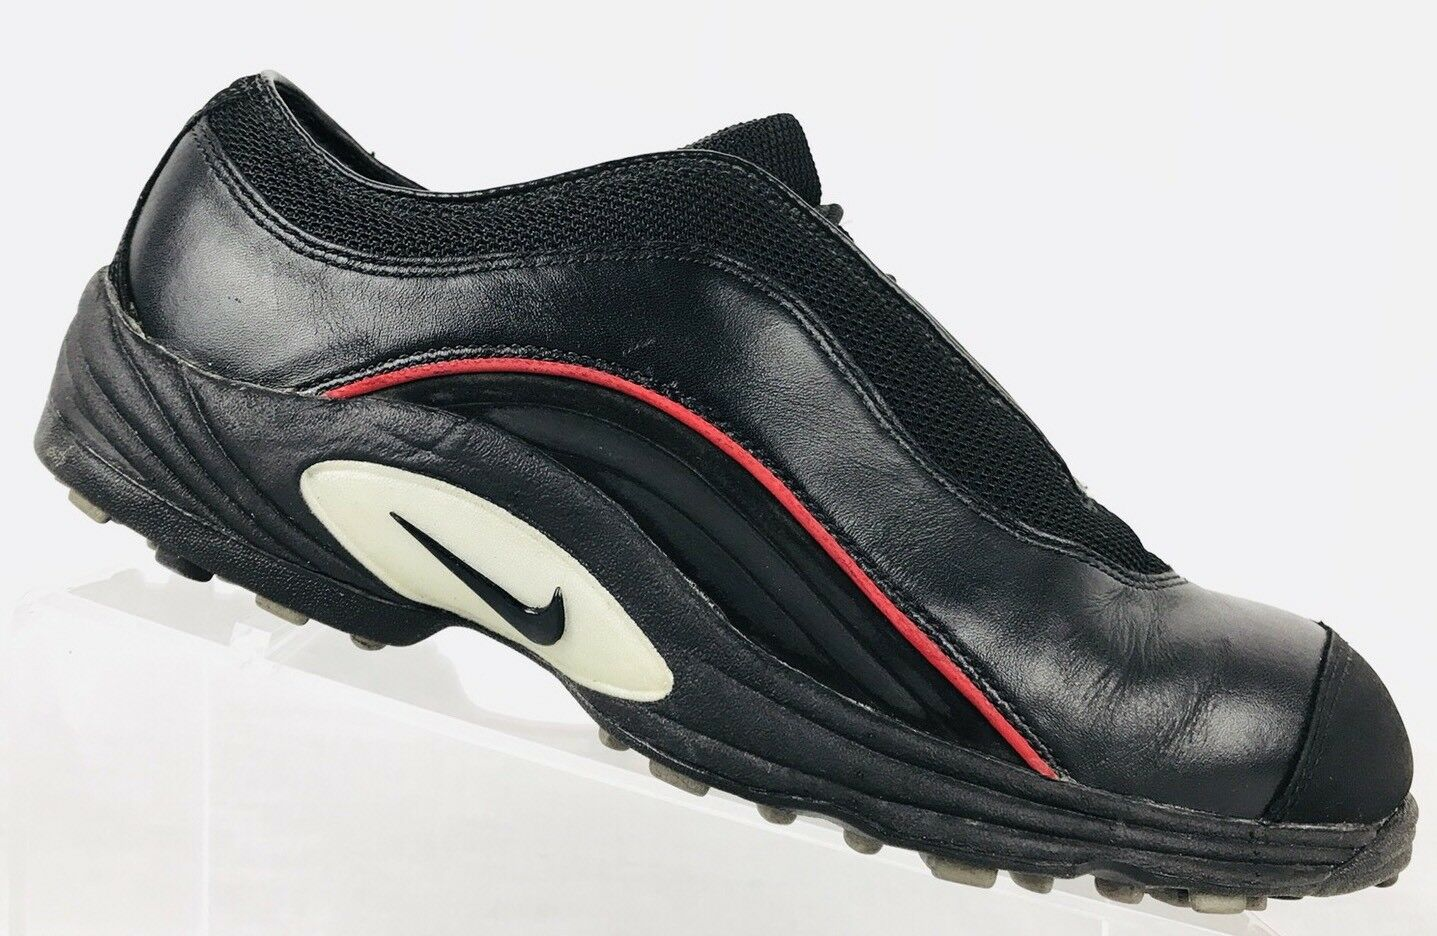 Nike Air Zoom T-Range Mens US 7 Black Spikeless Golf Shoes Original Tiger Model Wild casual shoes